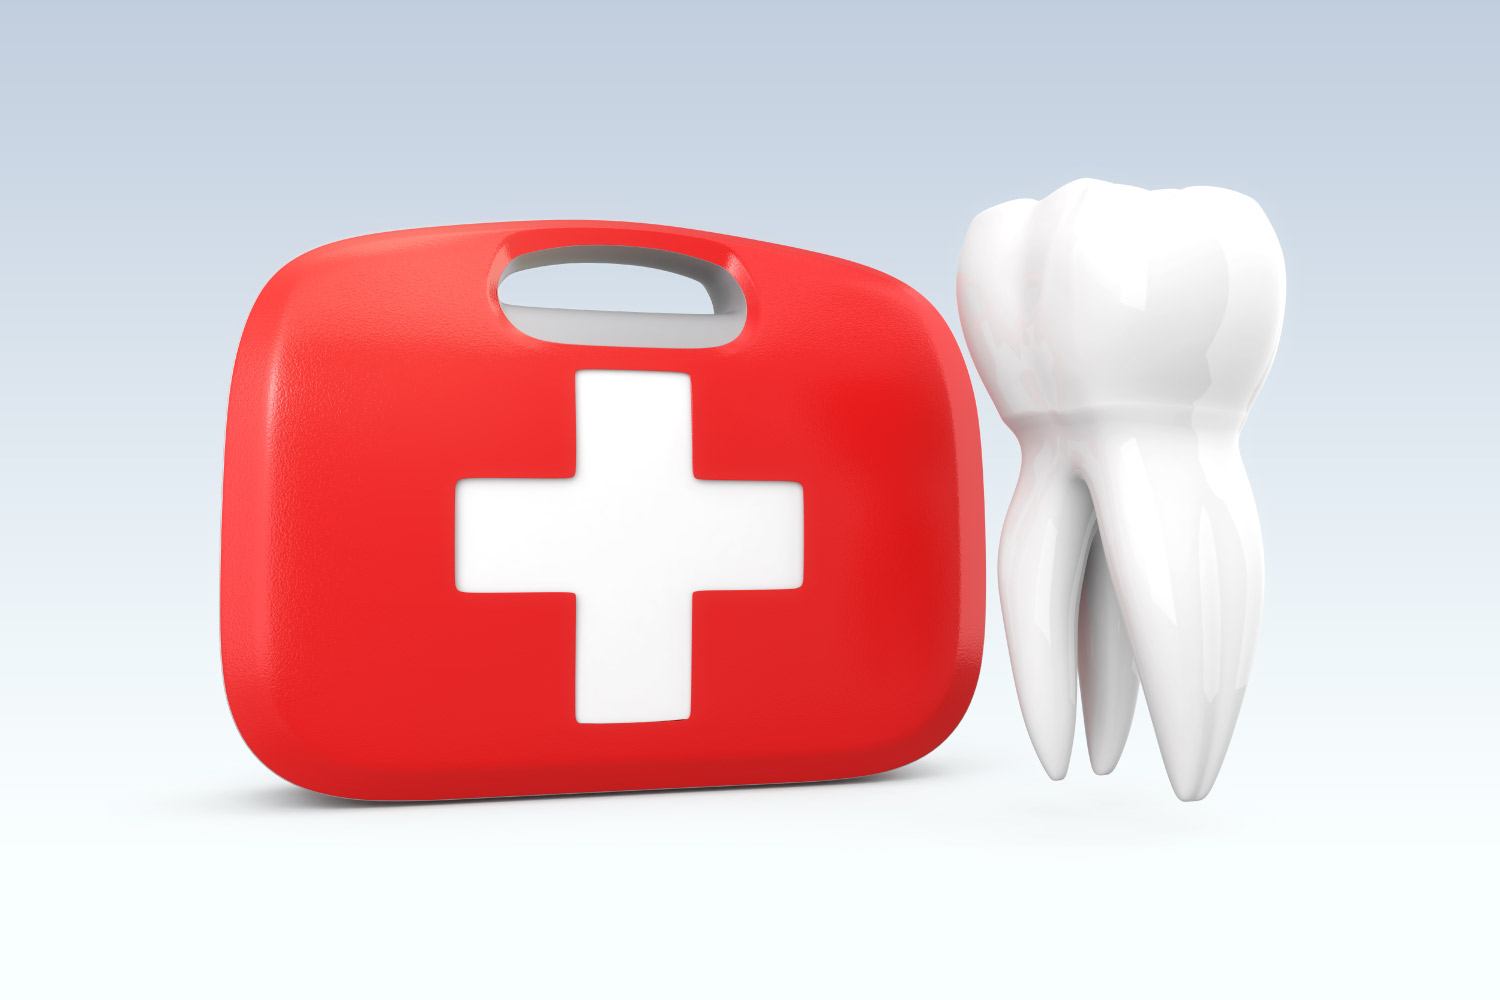 A red first aid kit next to a white tooth to indicate a dental emergency in Denver, CO